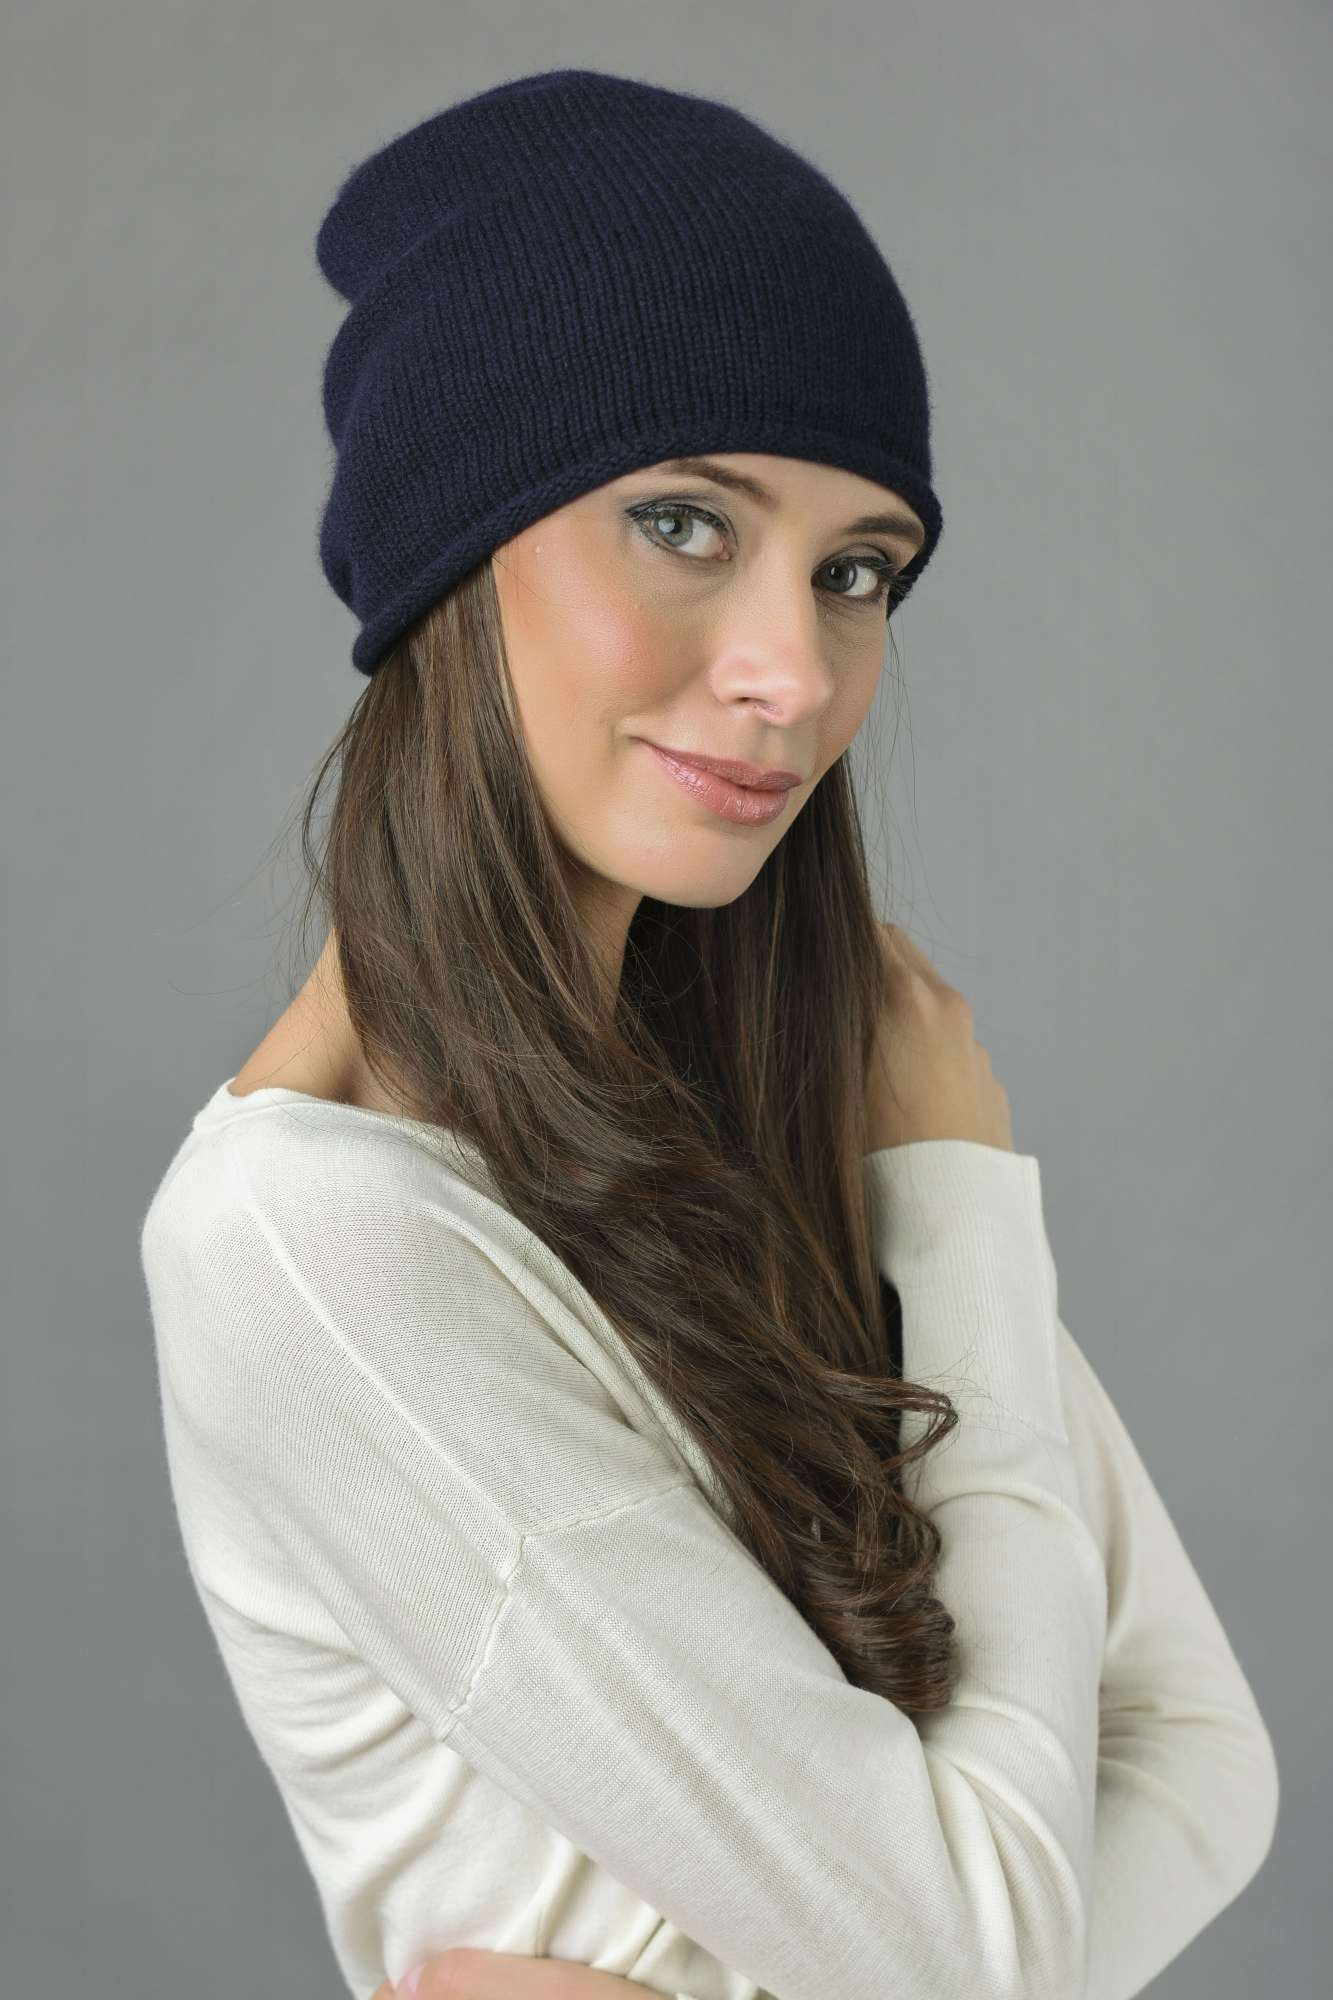 Pure Cashmere Plain Knitted Slouchy Beanie Hat in Navy Blue  ce01e0e6835